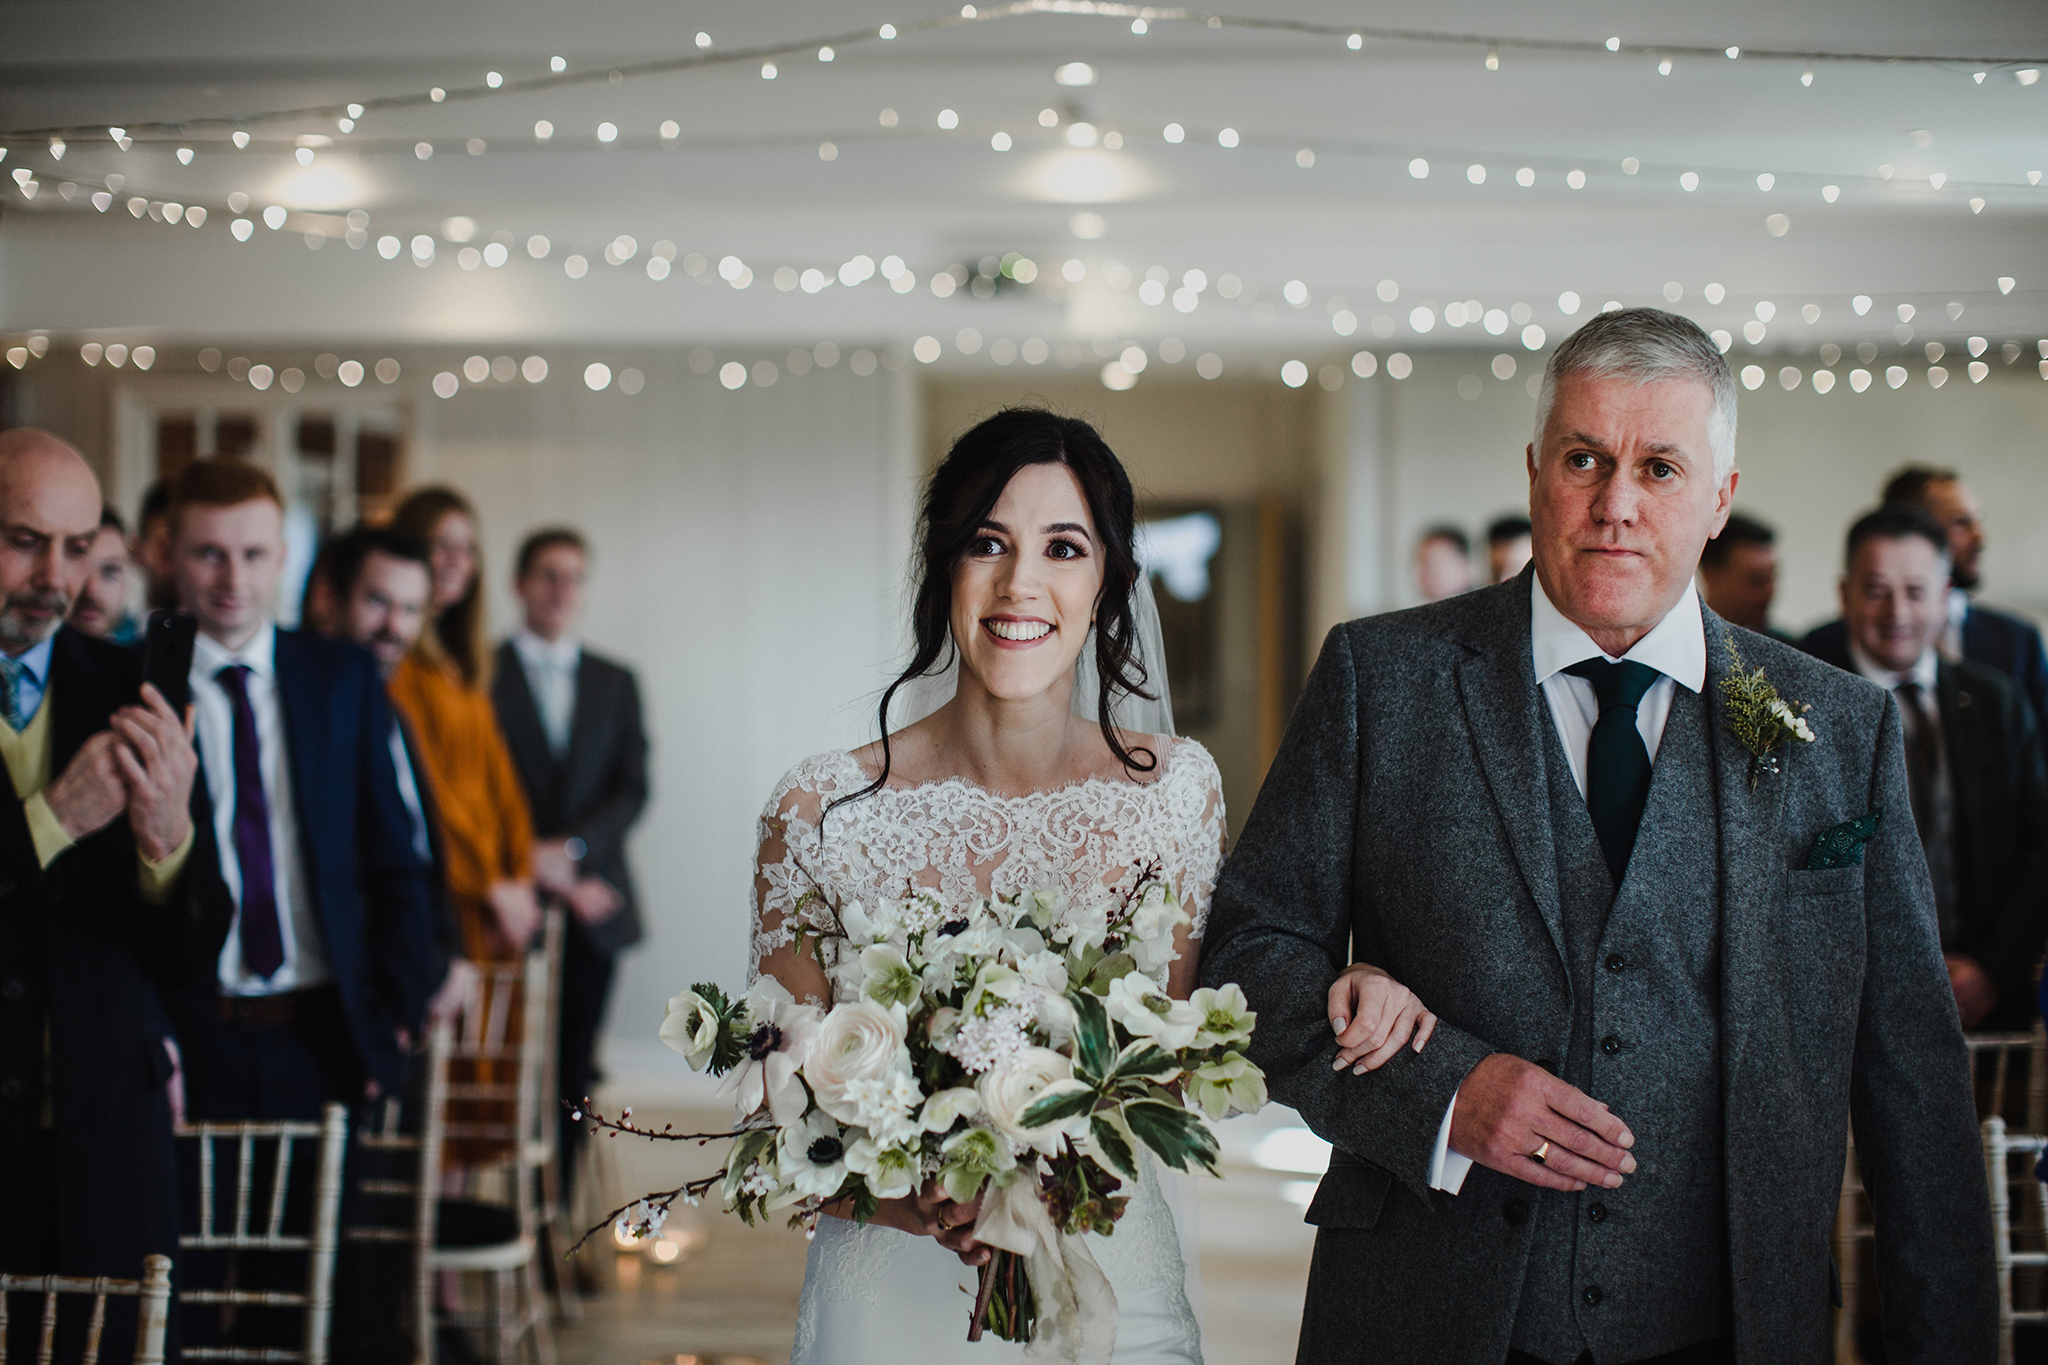 A nice moment between the bride and her father